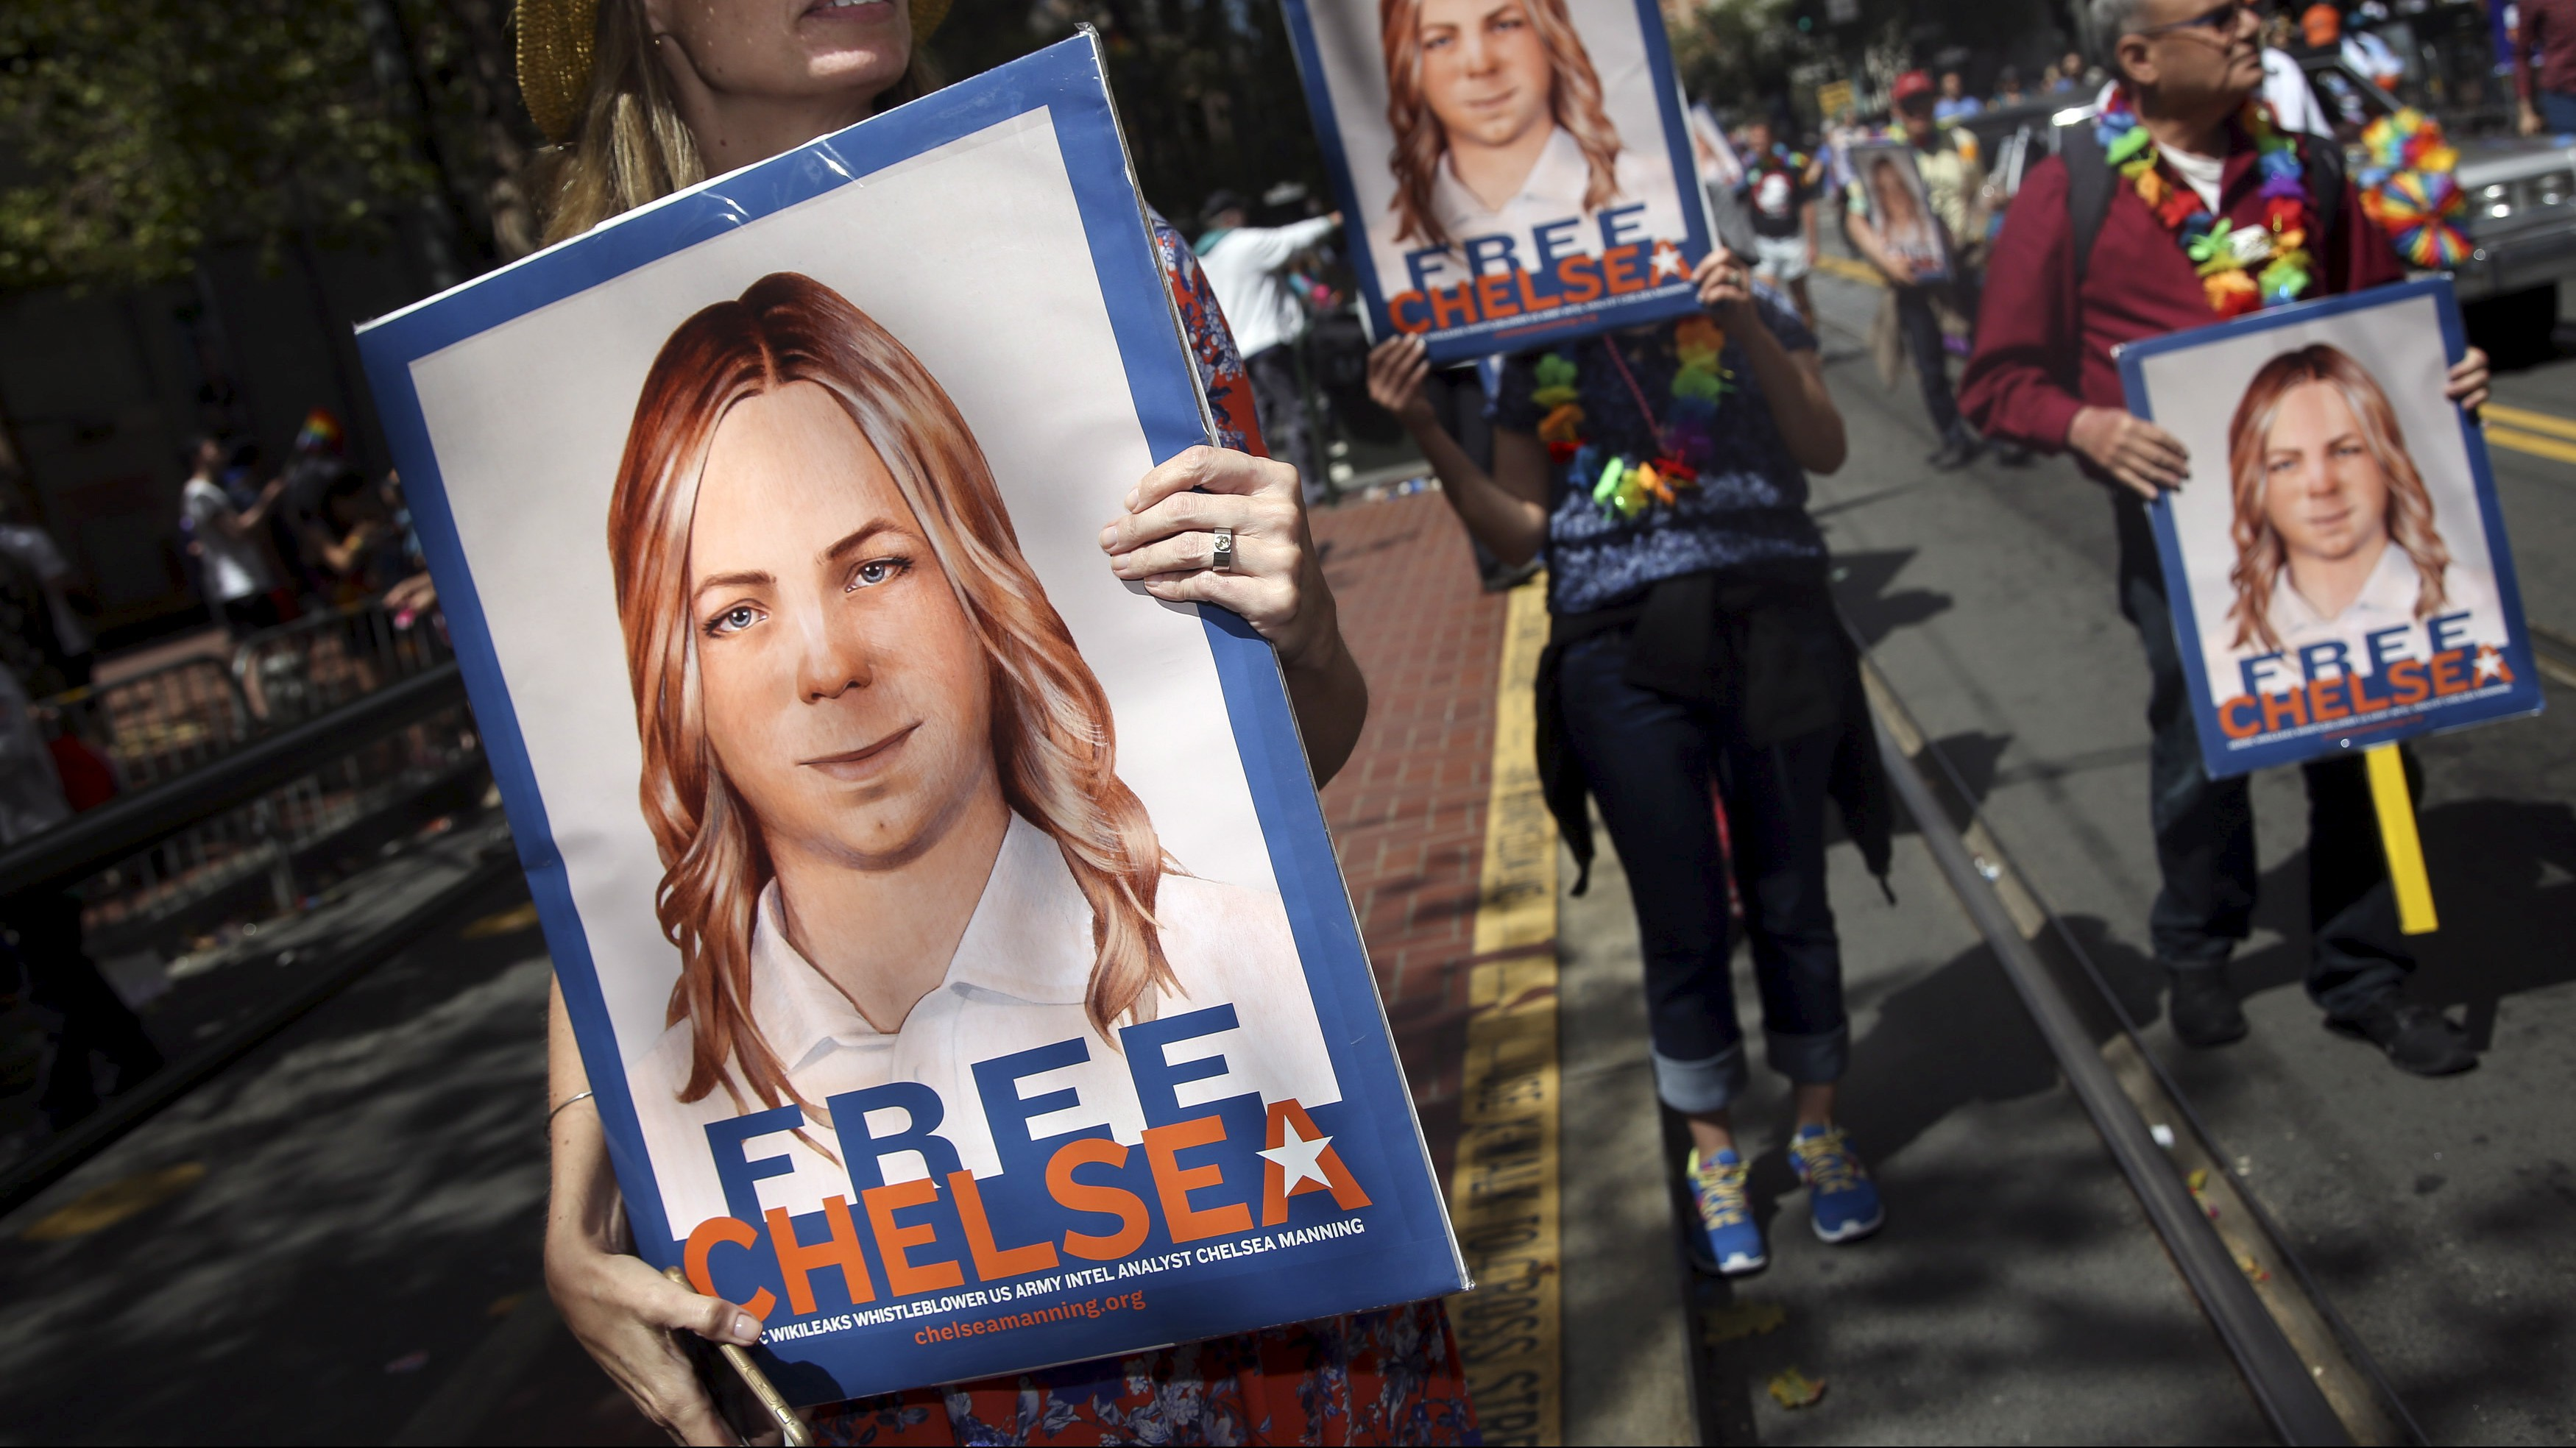 Manning is an advocate for transgender rights and freedom of speech.